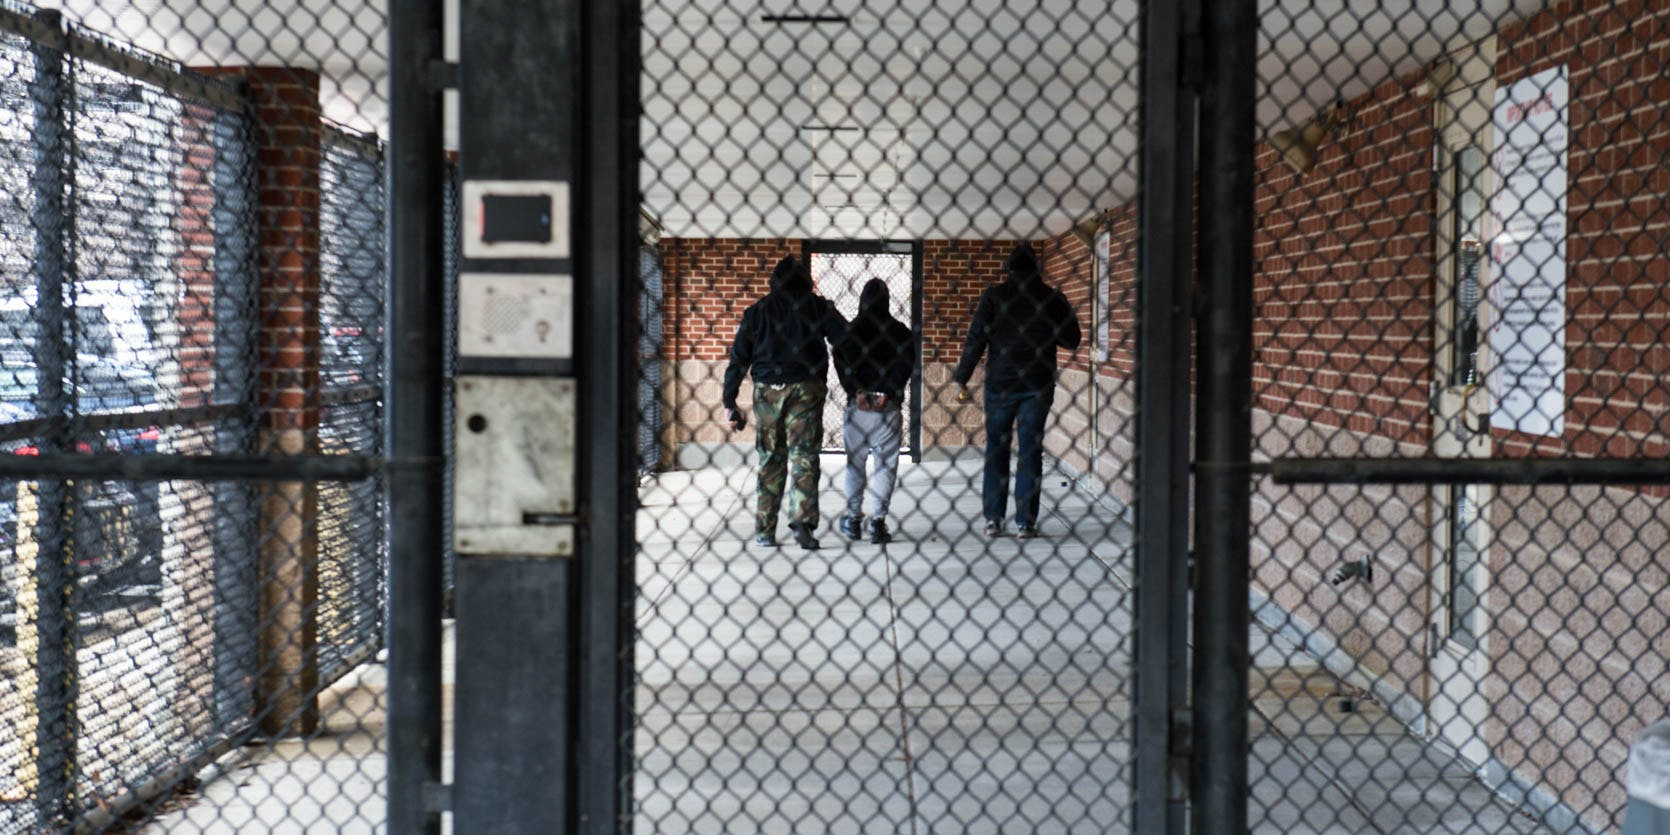 An inmate is escorted down the prison hallway. synthetic marijuana deaths in prison.